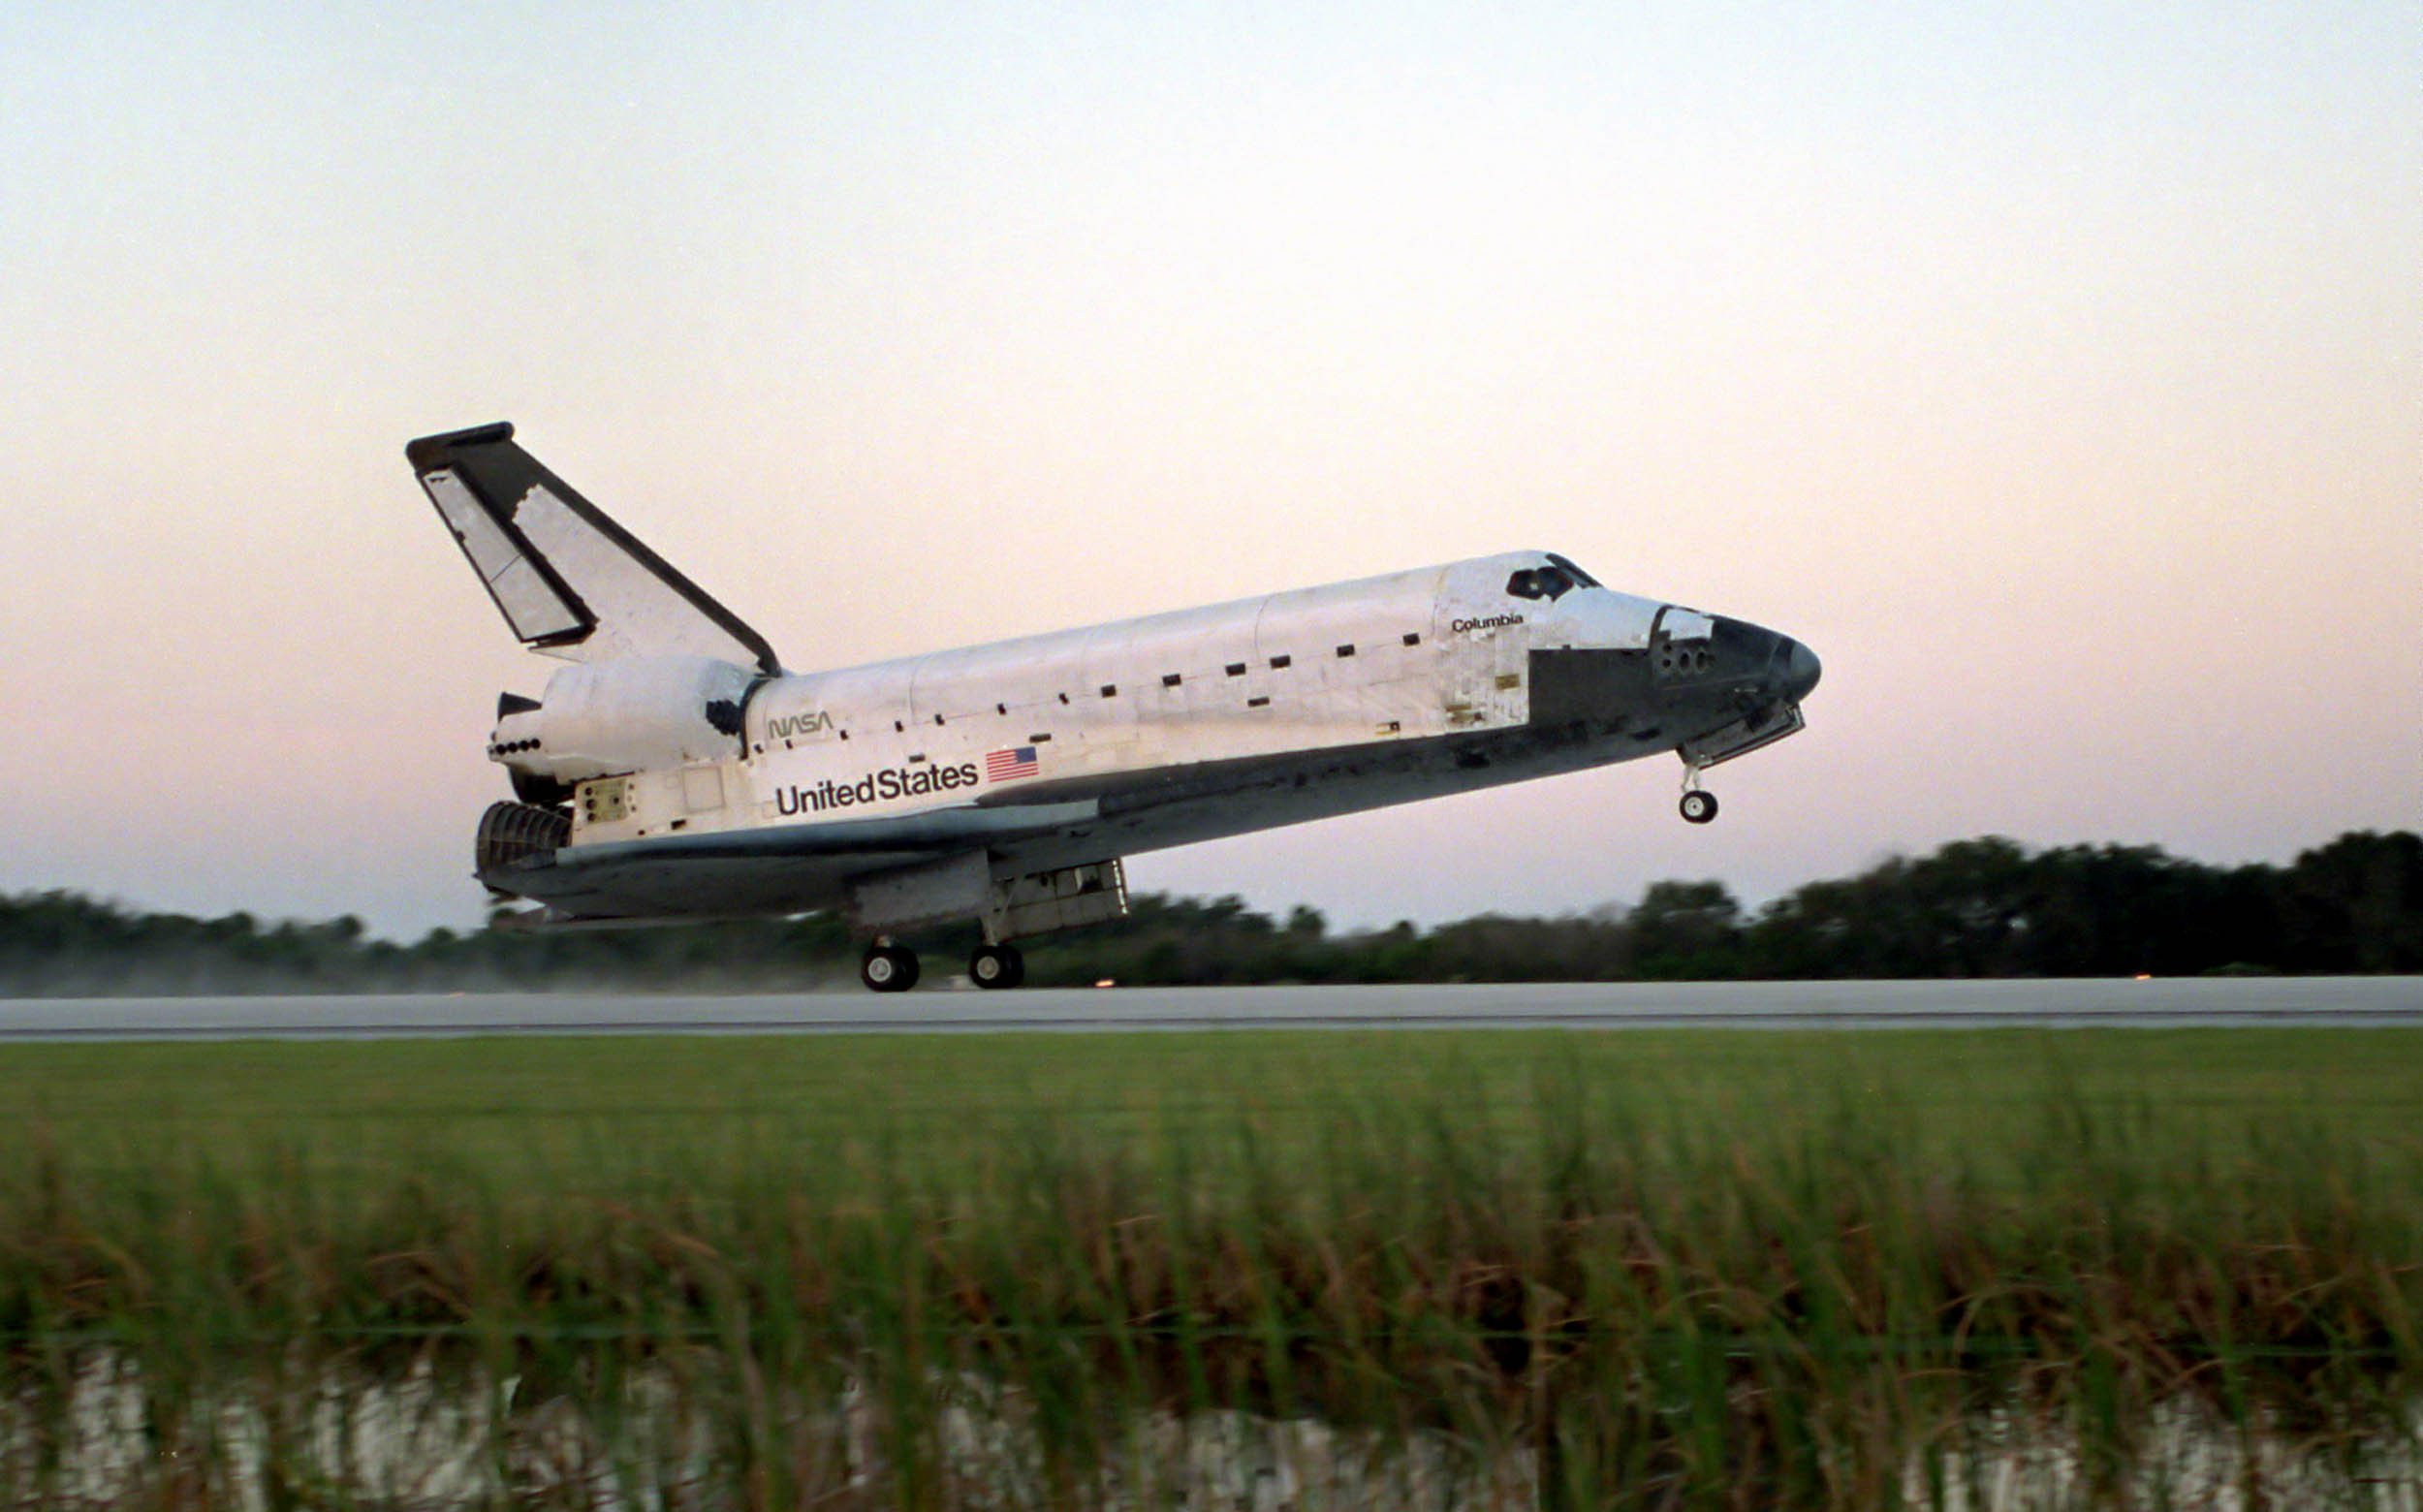 usa space shuttle columbia - photo #30